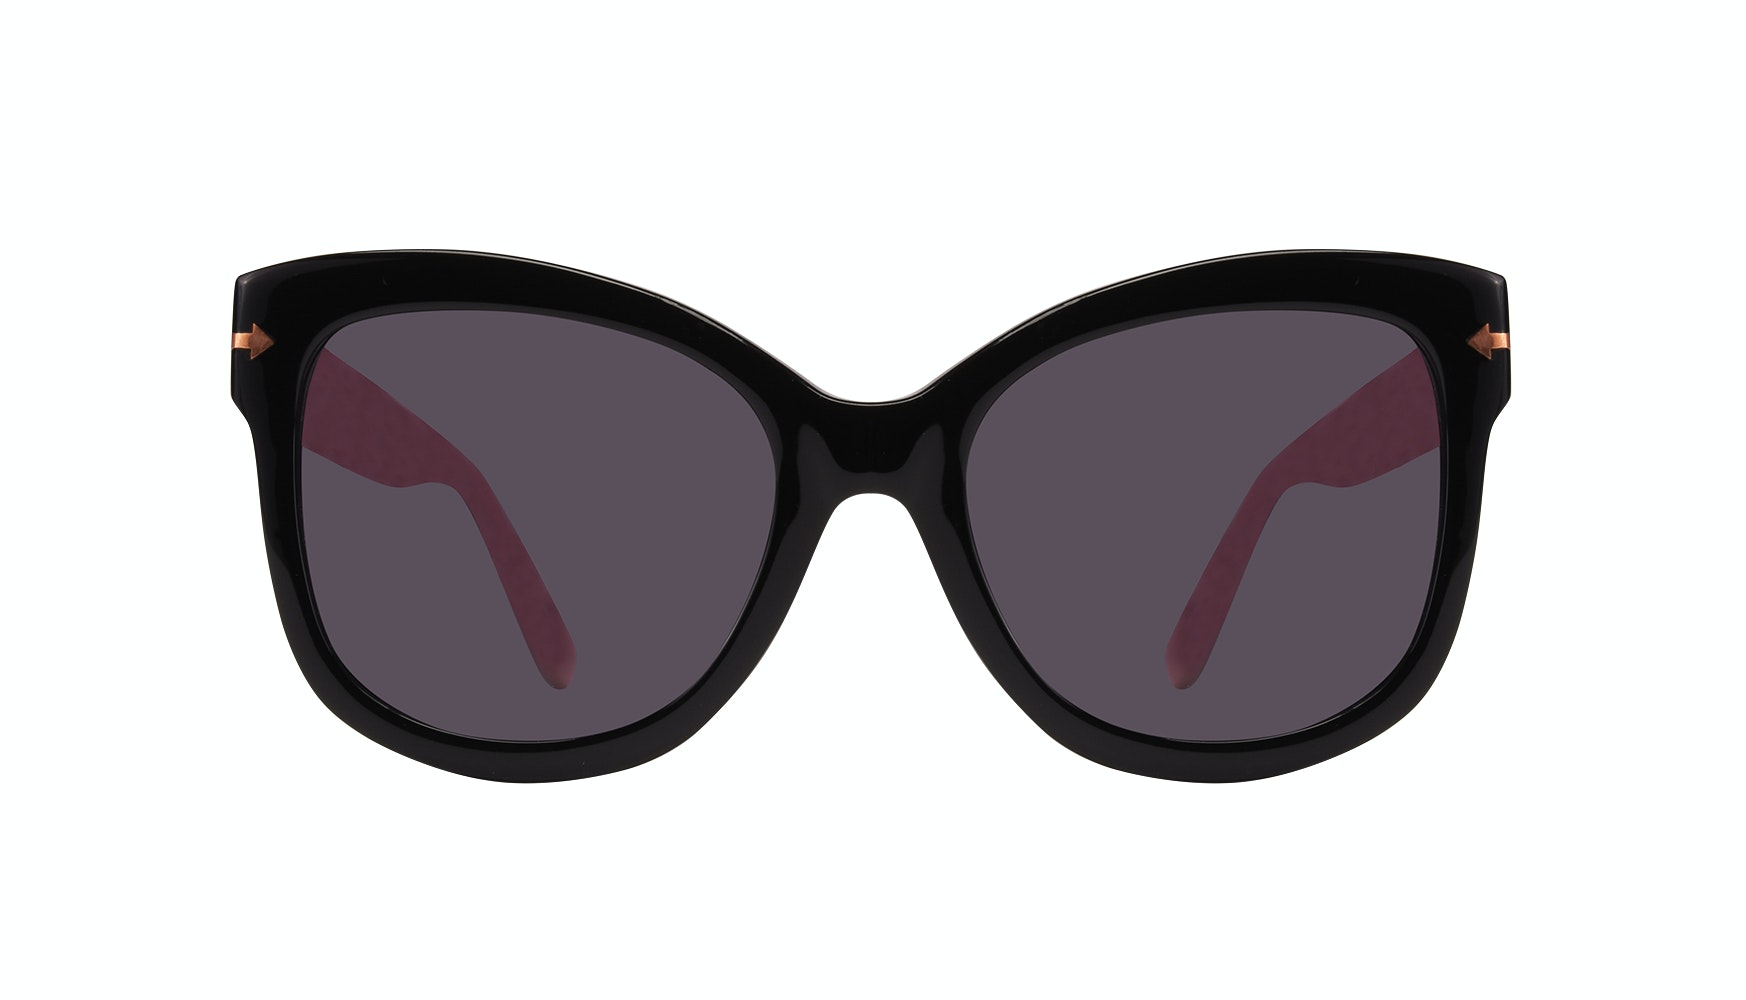 Affordable Fashion Glasses Cat Eye Square Sunglasses Women Marlo Carbon